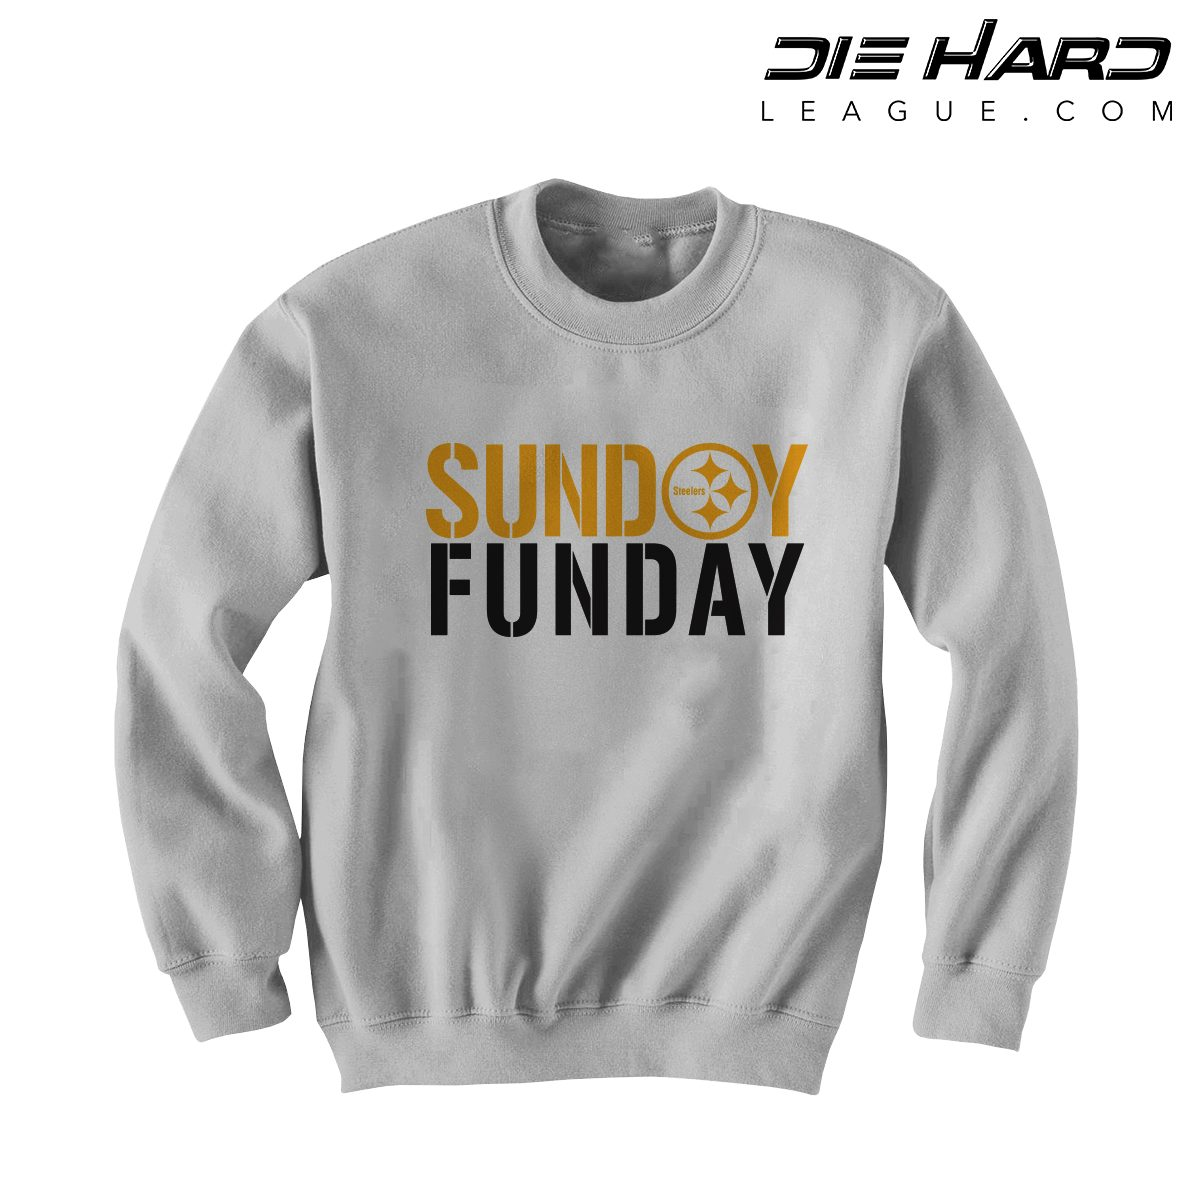 quality design 3c0cc 89978 Steelers Merchandise Pittsburgh - Sunday Funday White Crewneck